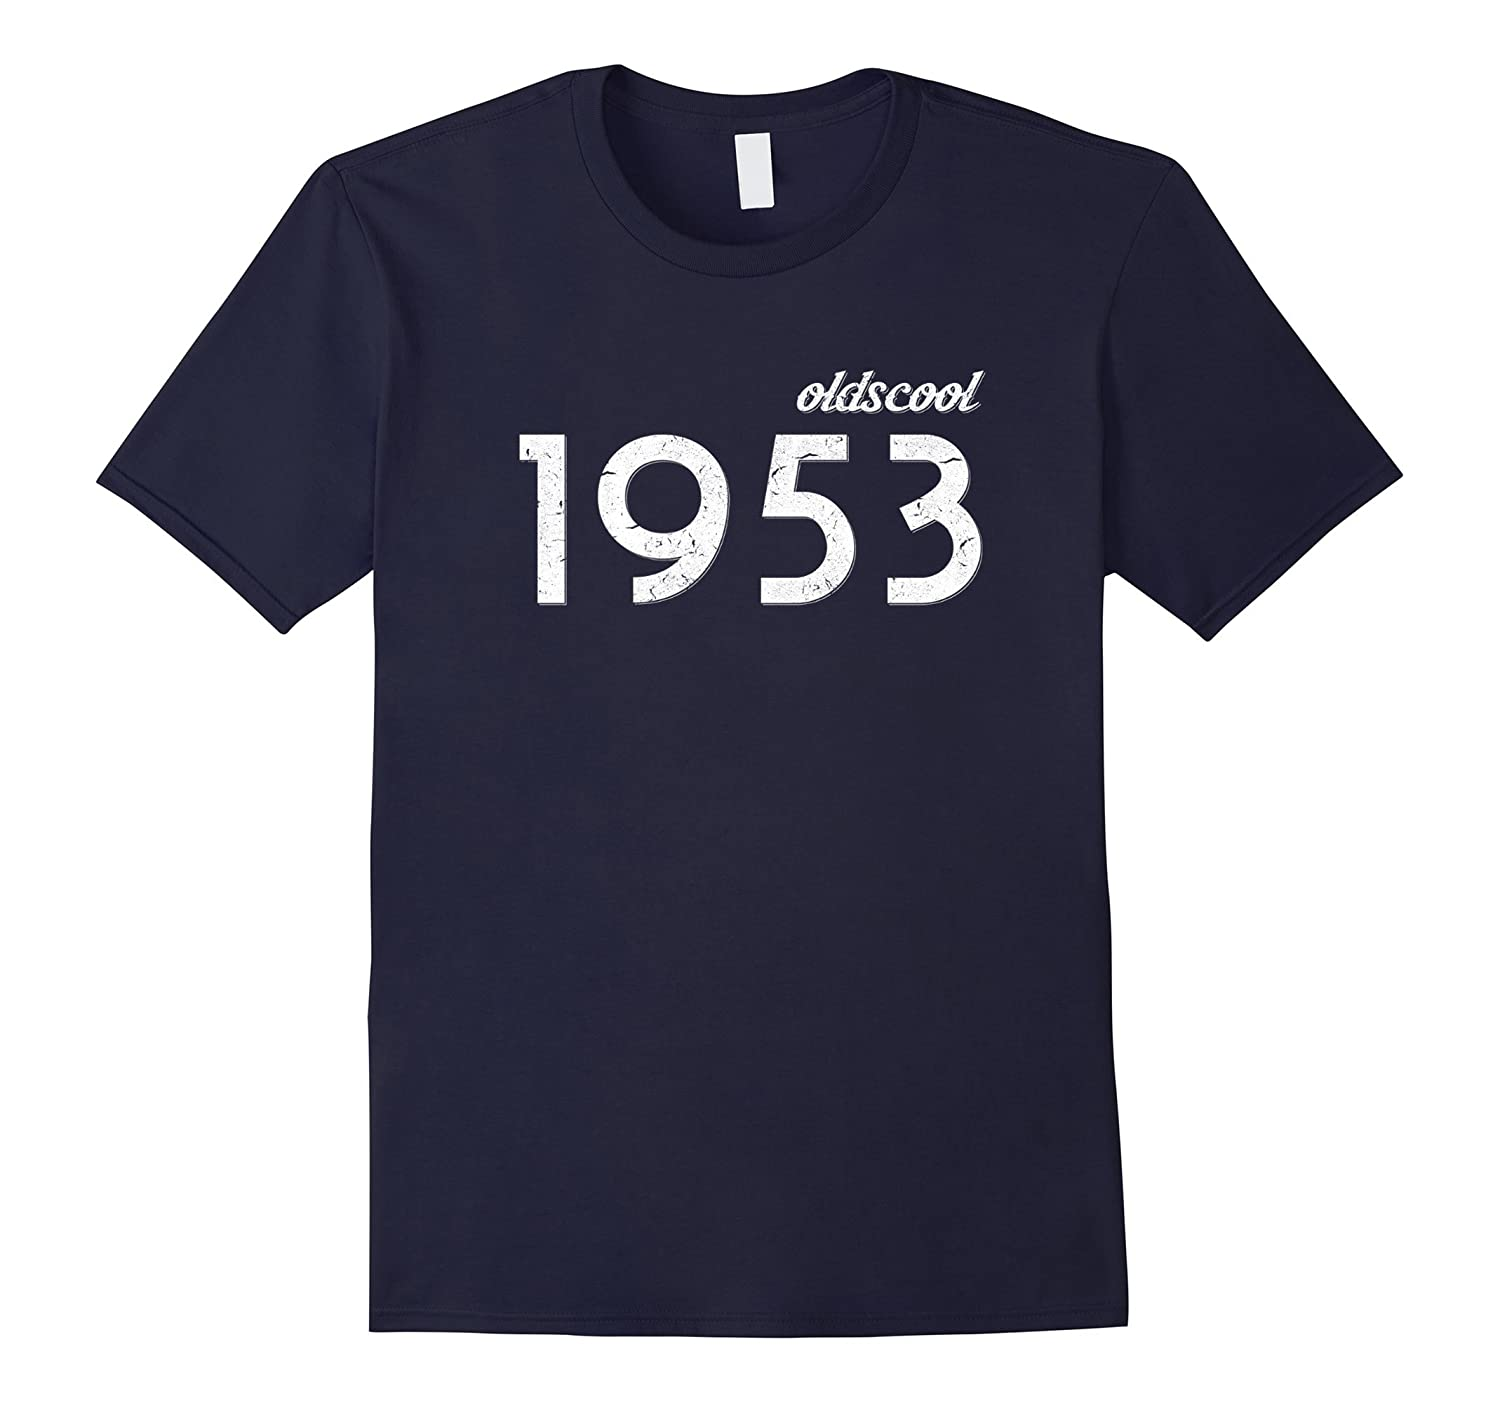 Oldscool T-shirt Old Scool 64th Birthday Gift Vintage 1953-Art